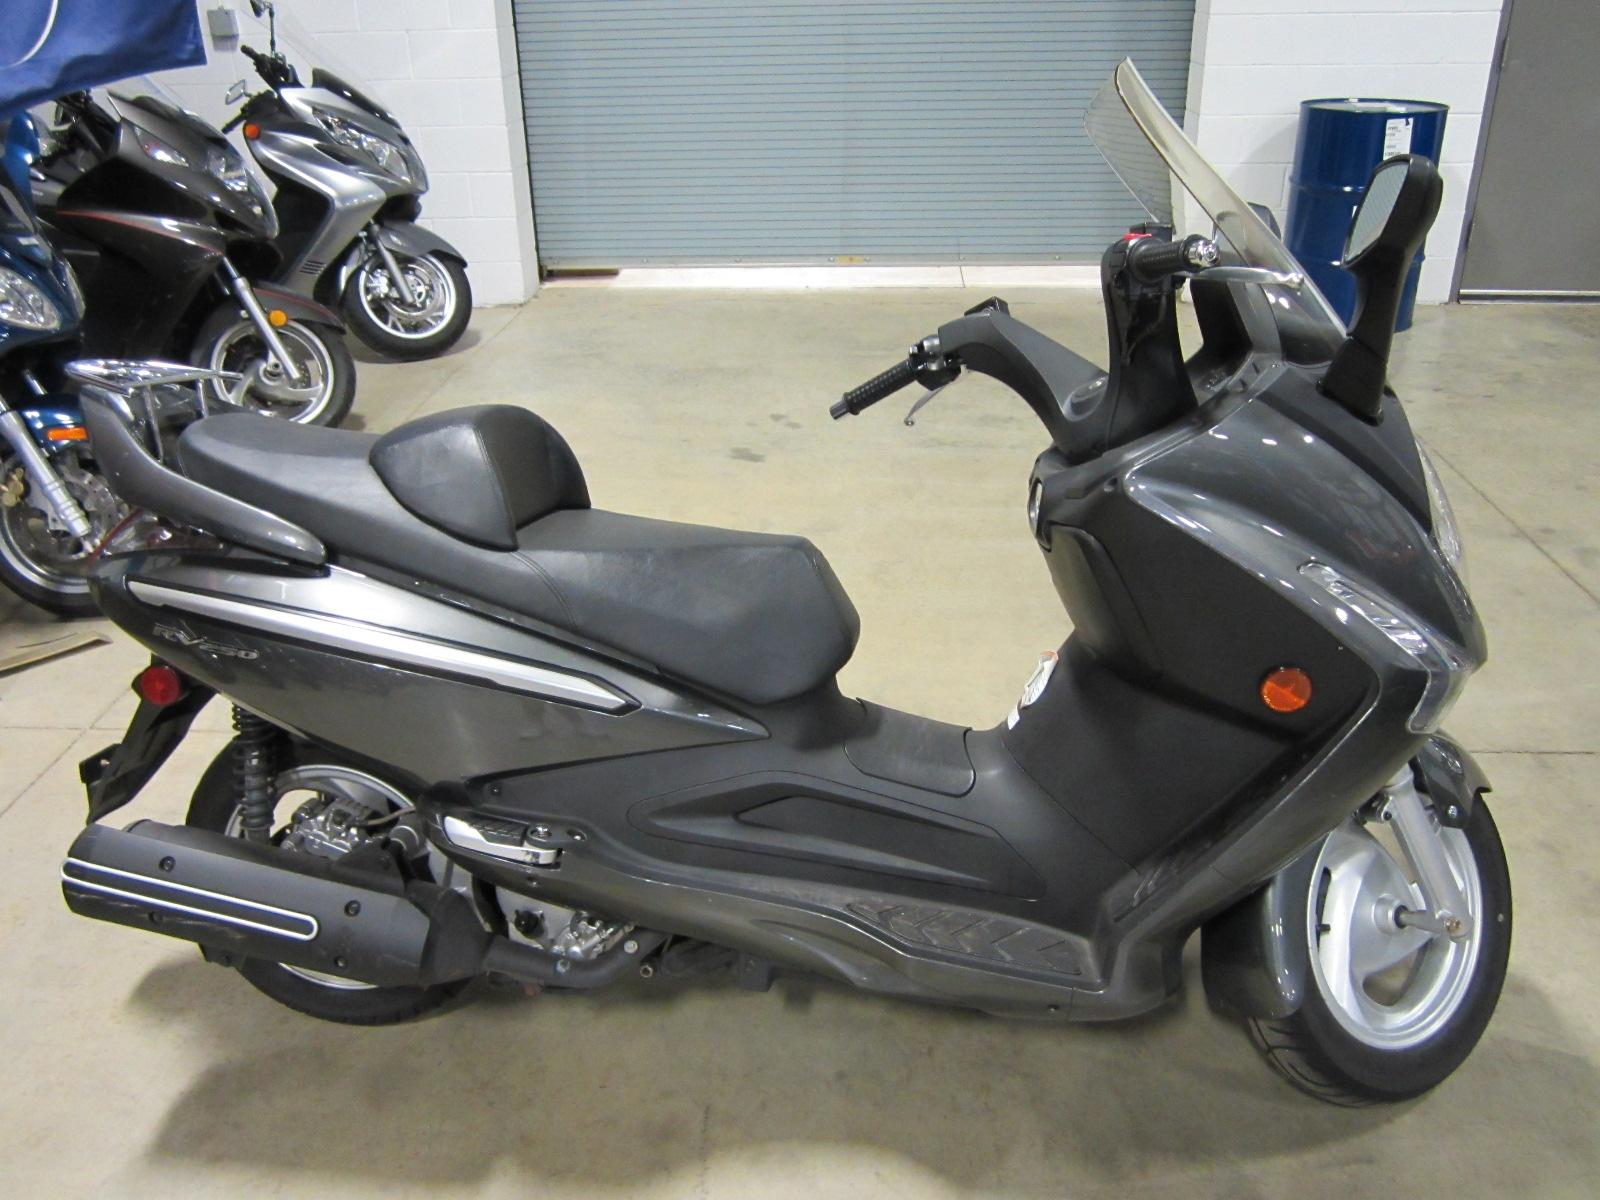 2009 SYM RV250, motorcycle listing